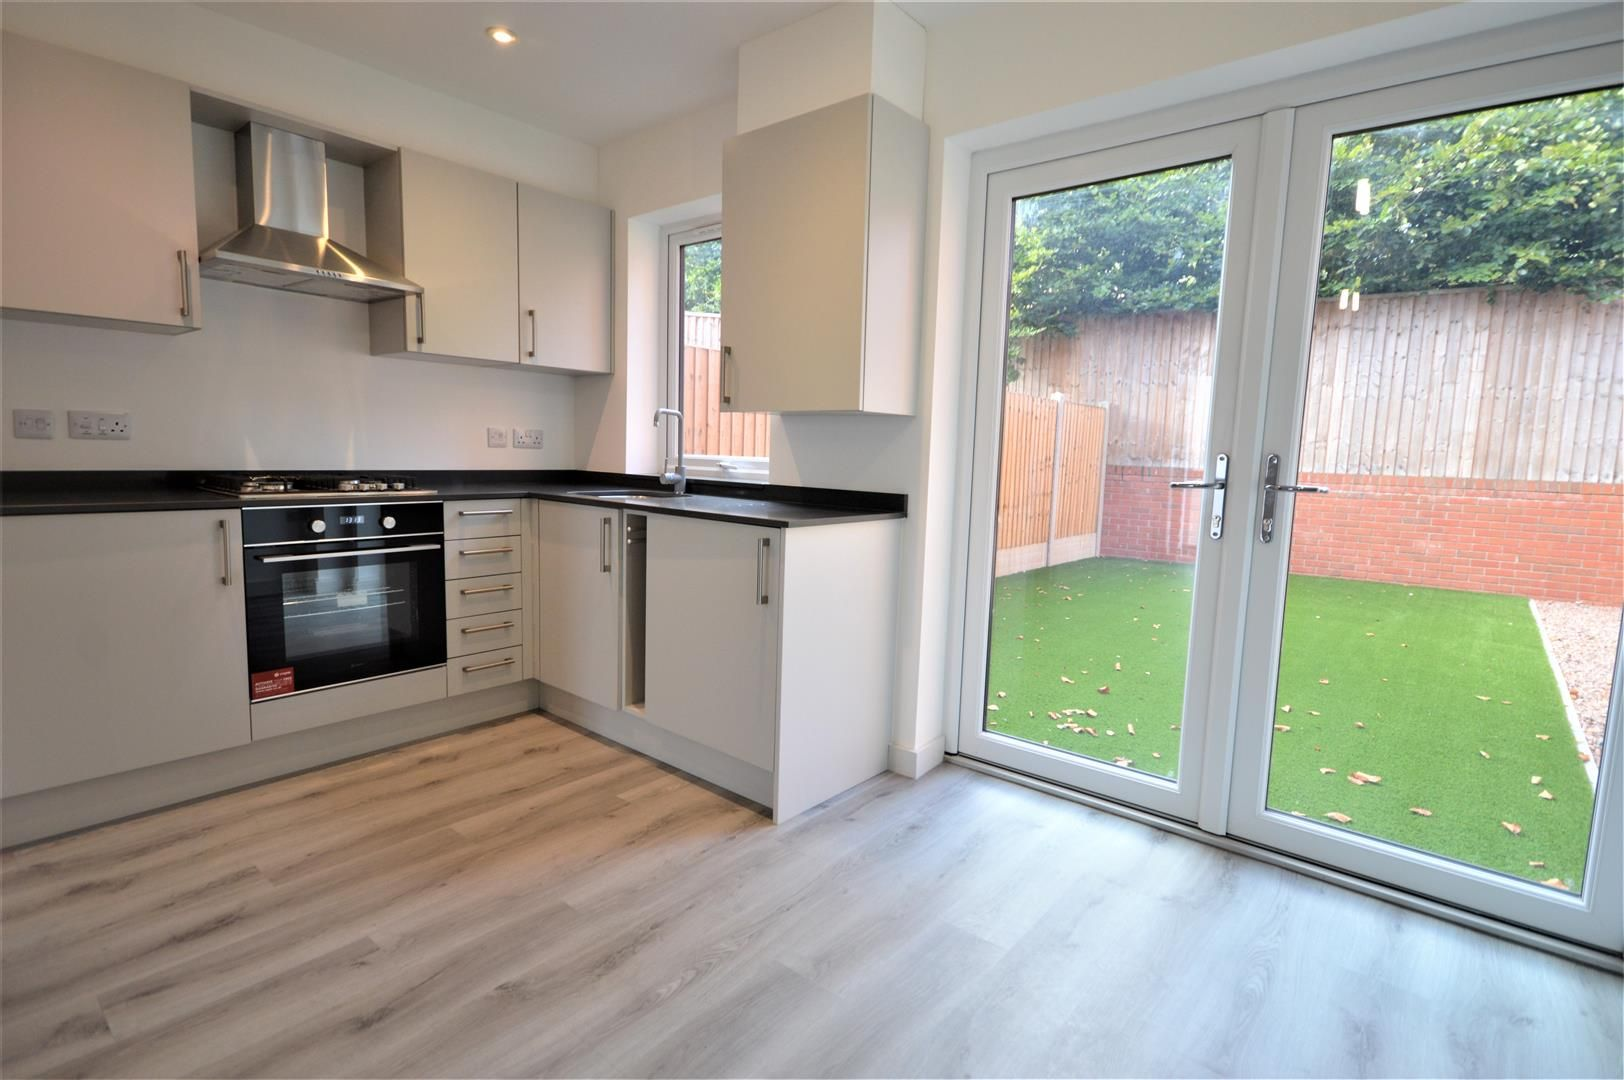 2 bed semi-detached for sale in Leominster 4